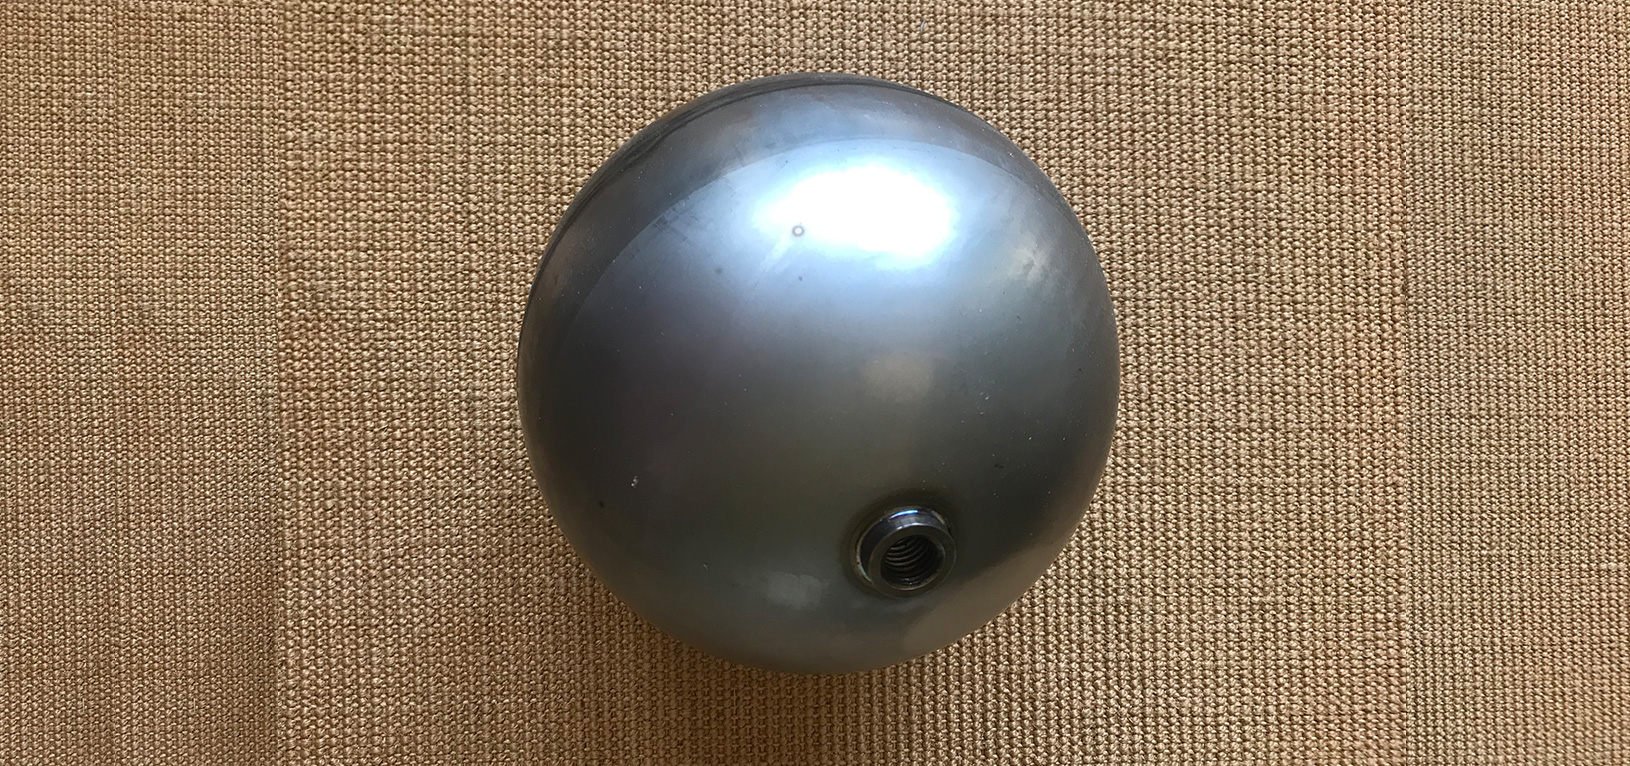 Chicago, IL Stainless Steel Float Balls, Float Balls and Stainless Steel Floats